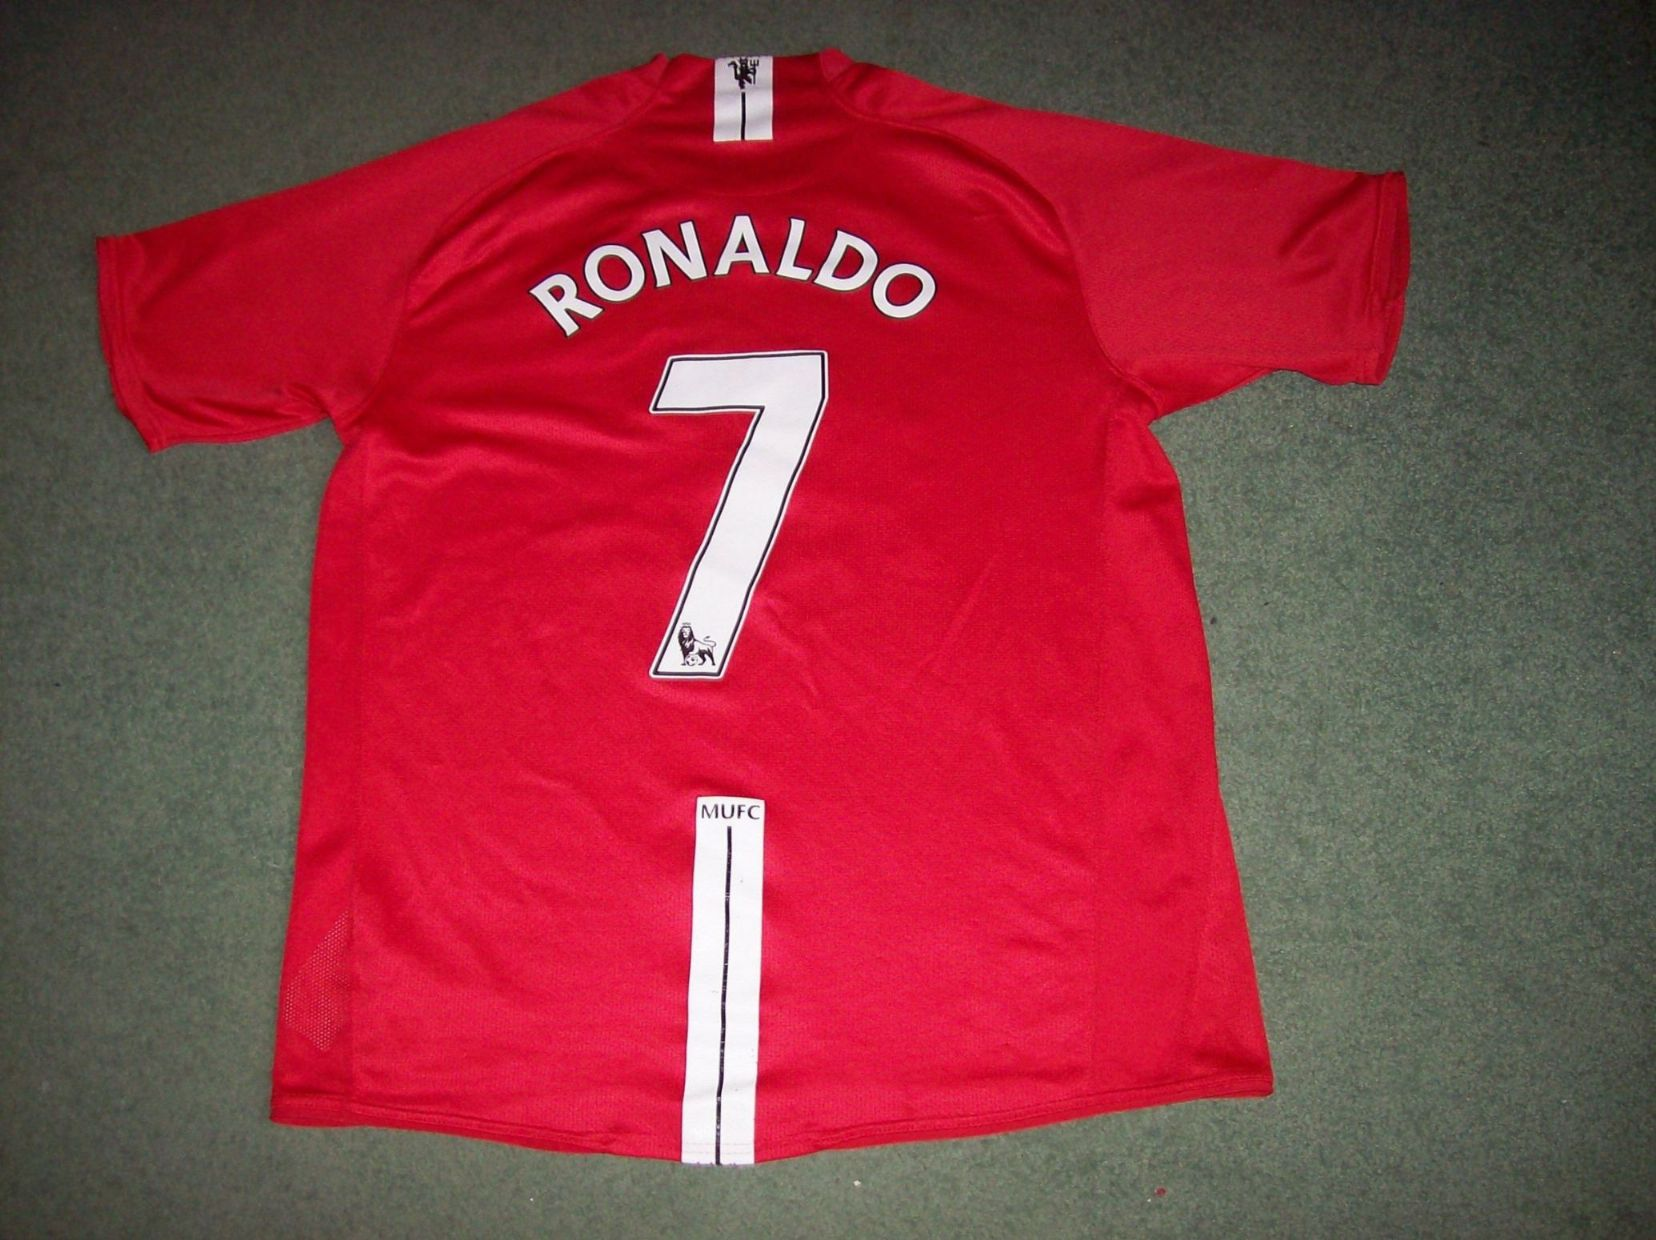 110395dc3 2007 2008 Manchester United Ronaldo Home Football Shirt Top Man Utd U  Adults Large